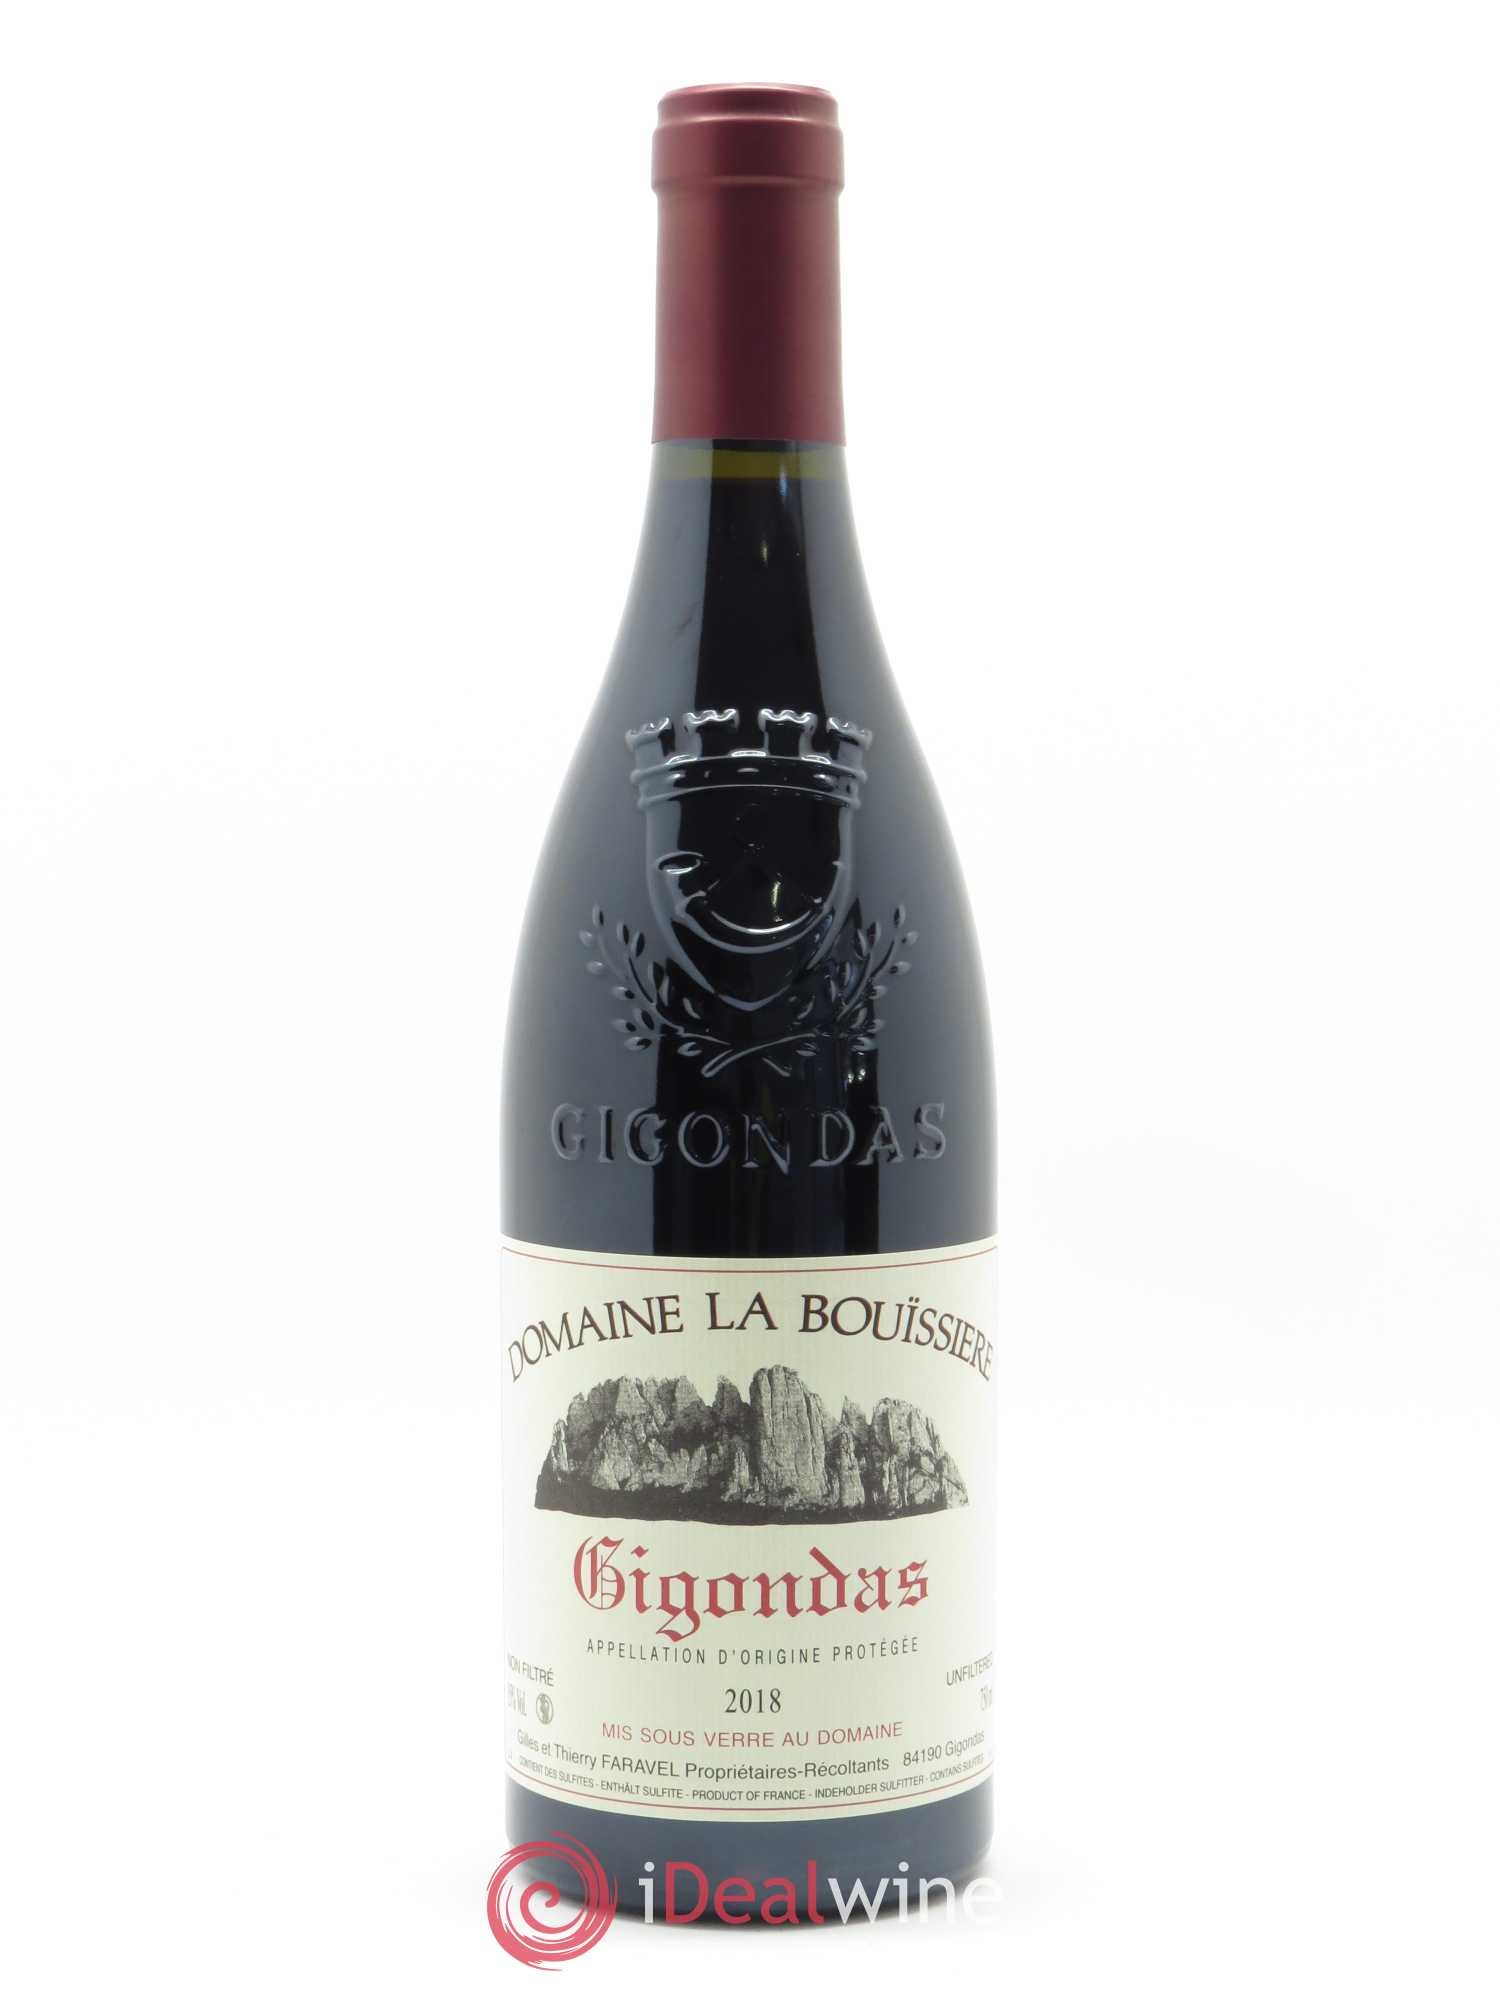 Gigondas La Bouïssière (Domaine)  2018 - Lot of 1 Bottle